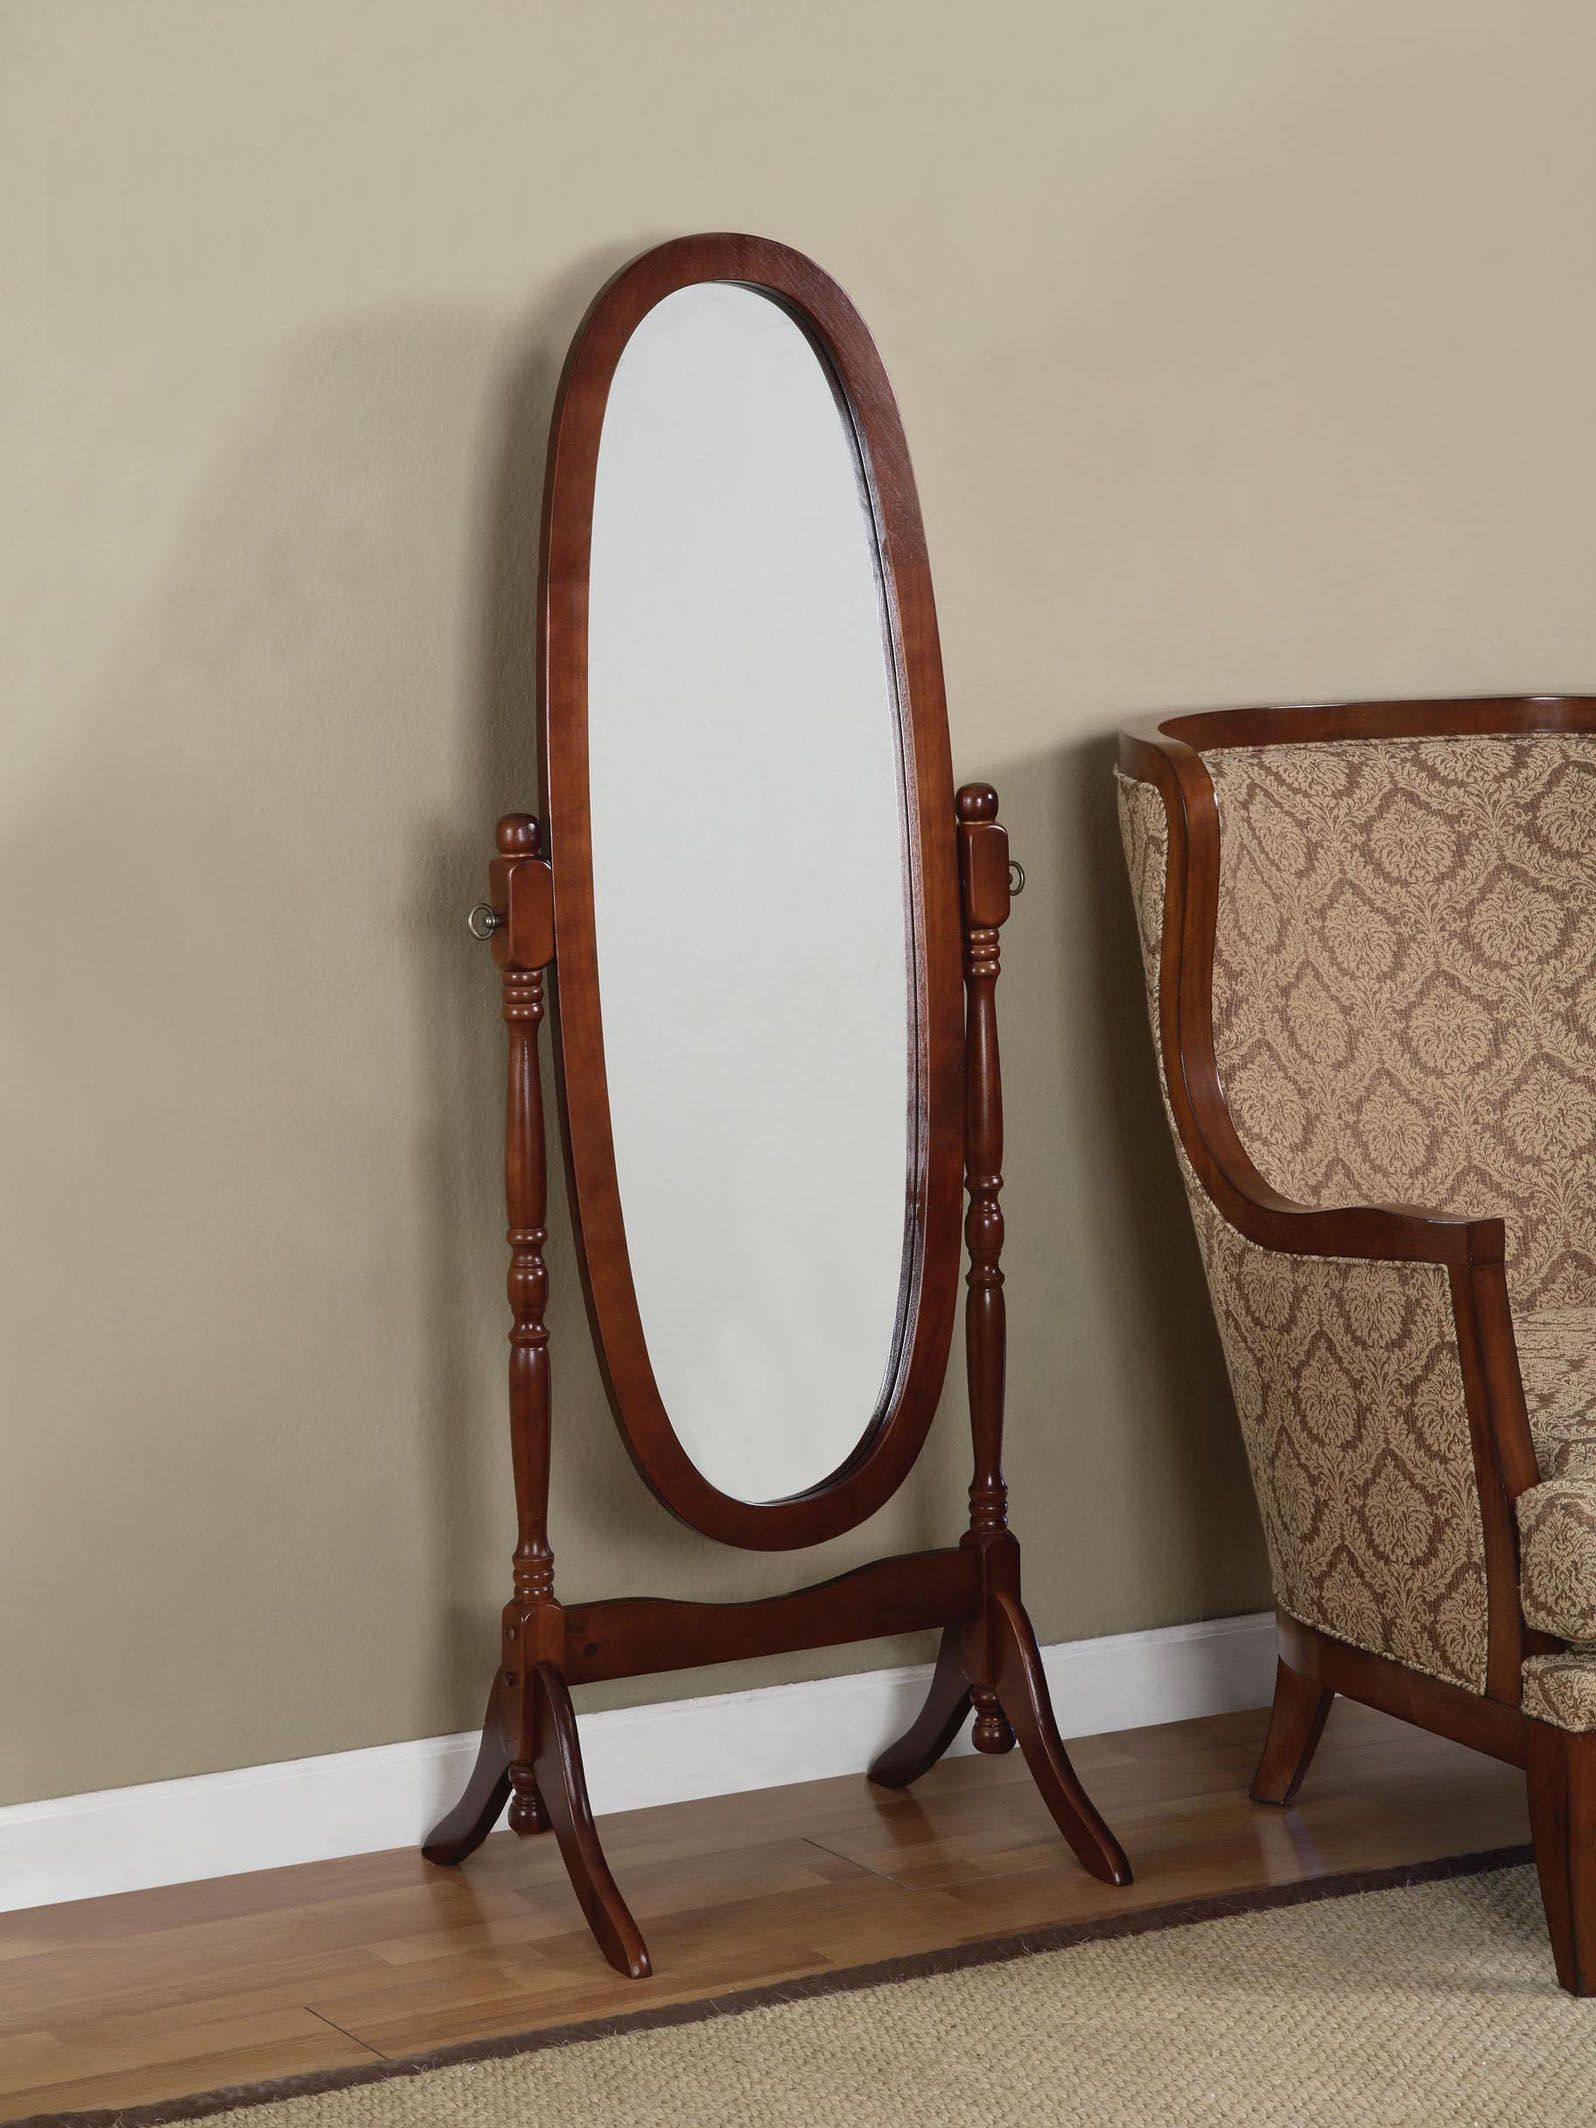 Charming Cheval Mirror Jewelry Armoire Ideas Full Length Swivel